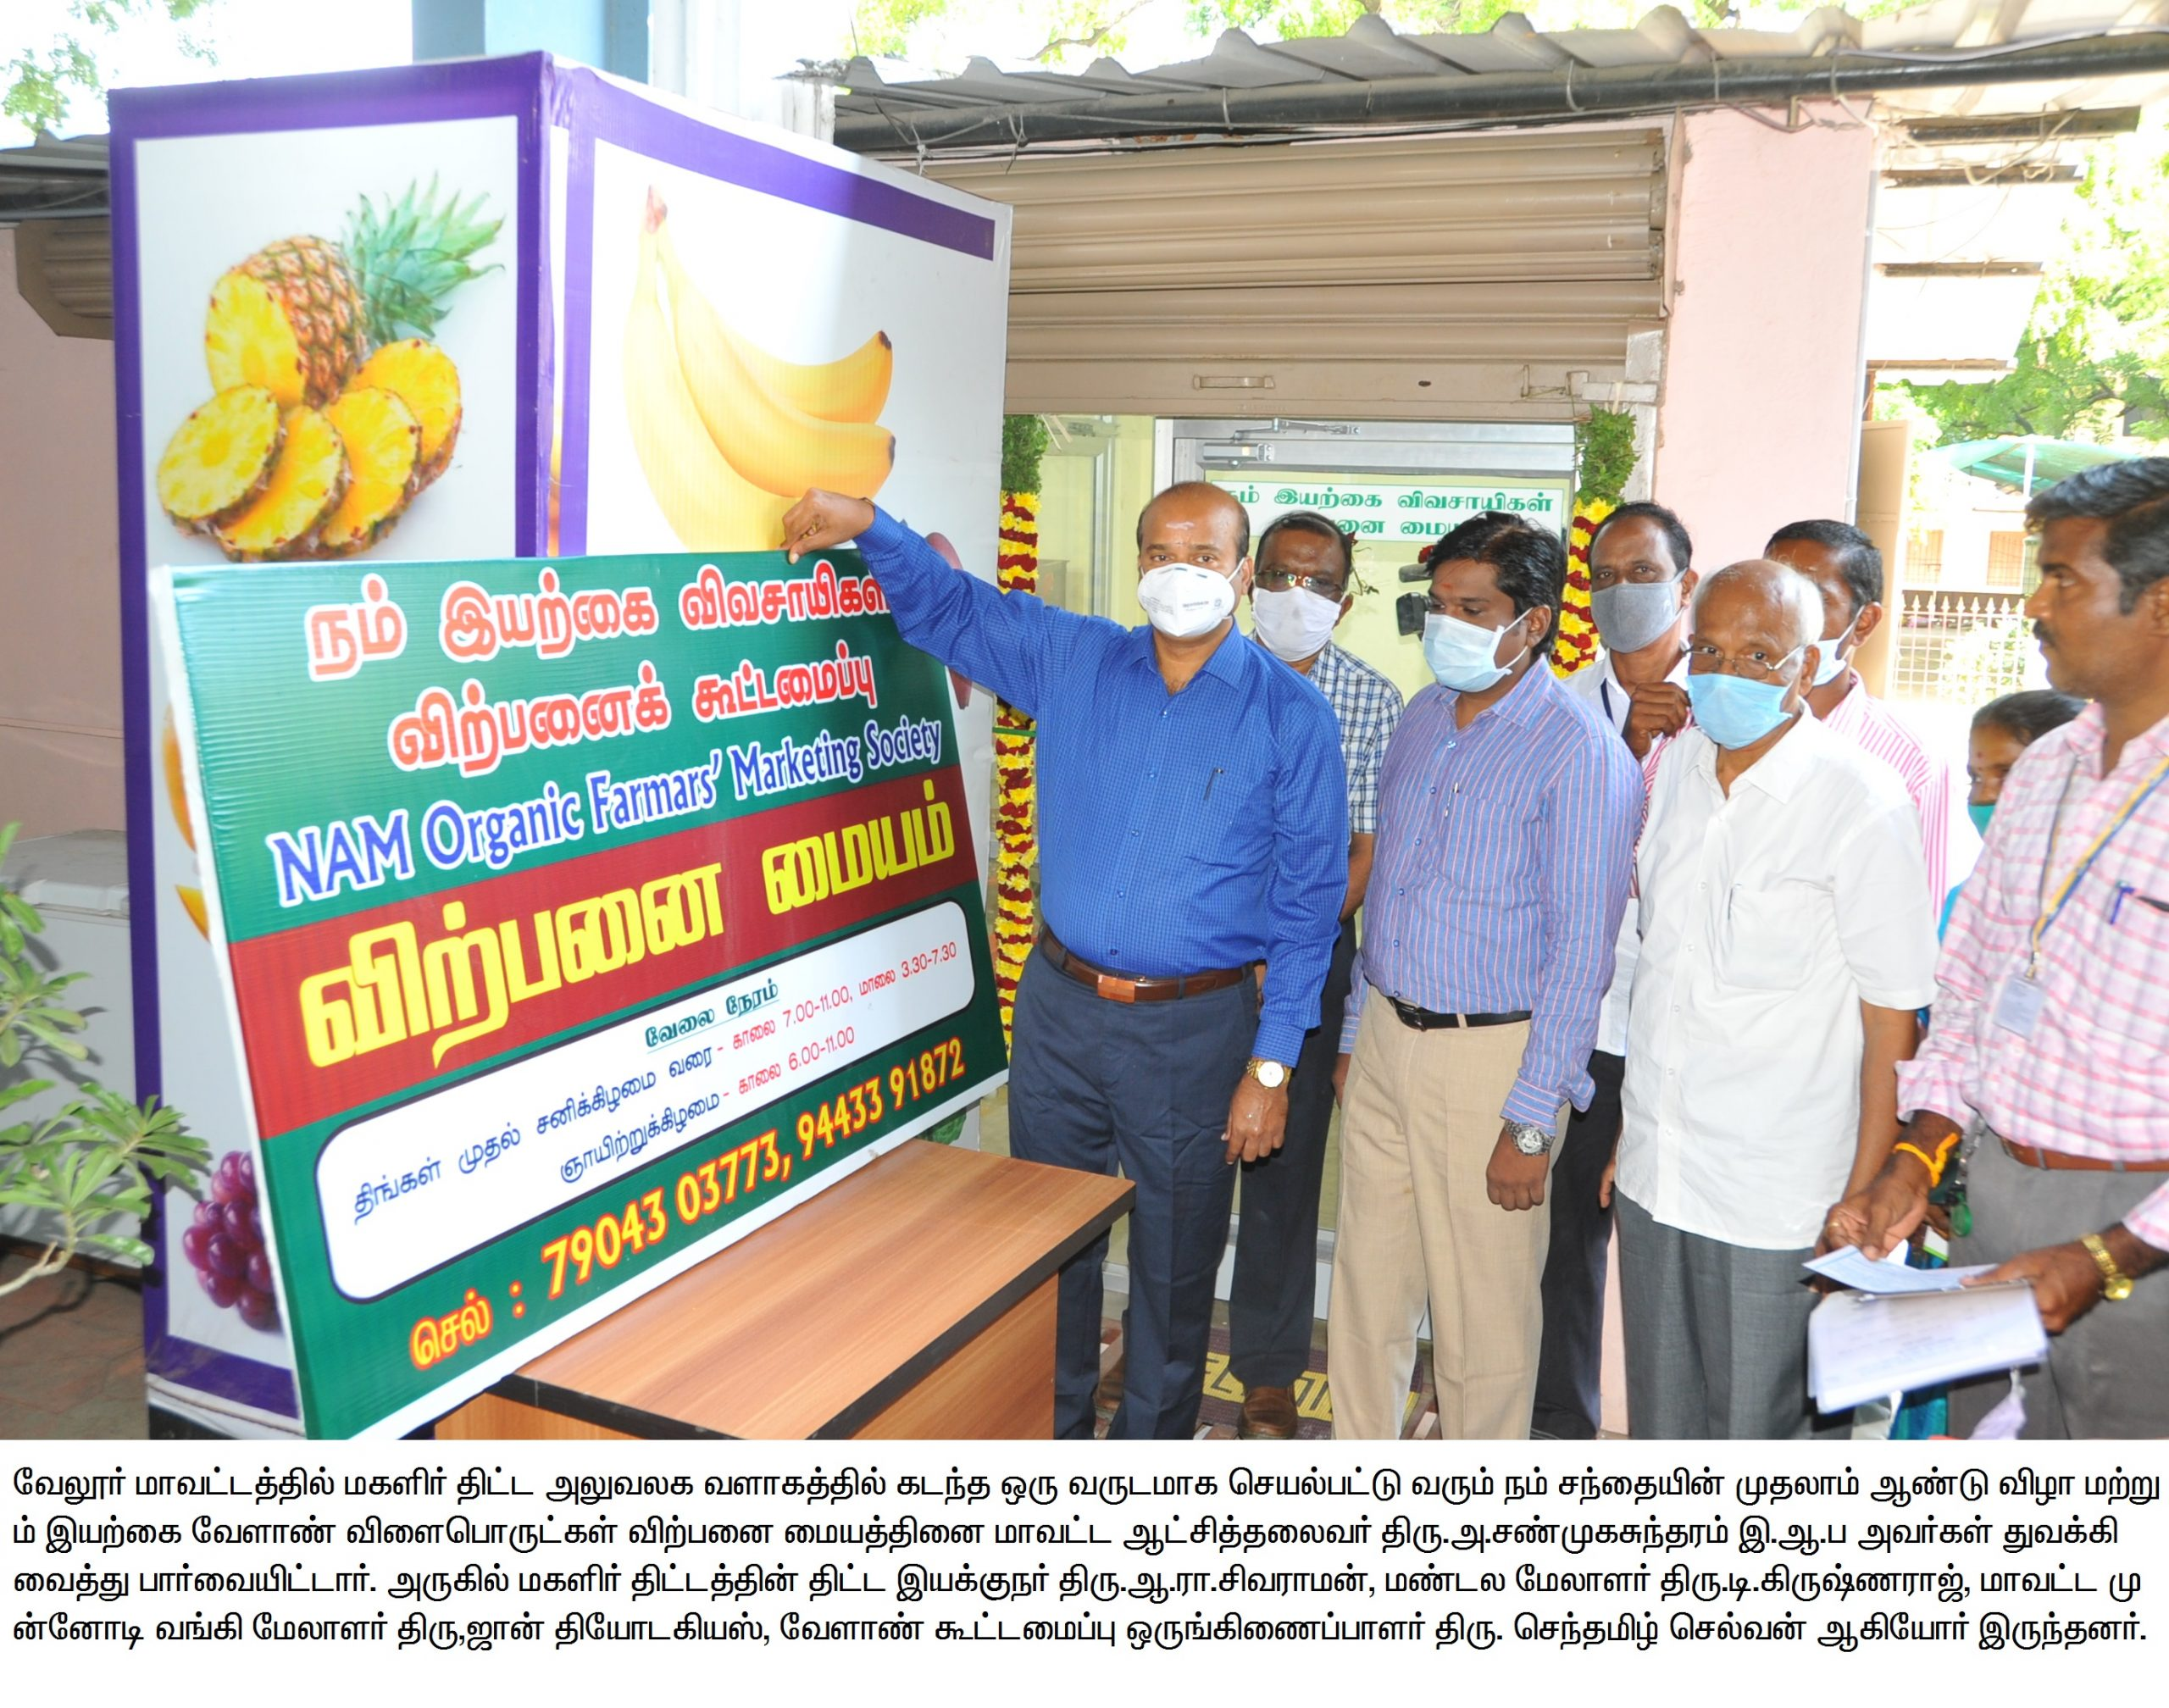 Districted Collector Inaugurated First year Anniversary of NAM Organic Farmer's Marketing Society 06-10-2020